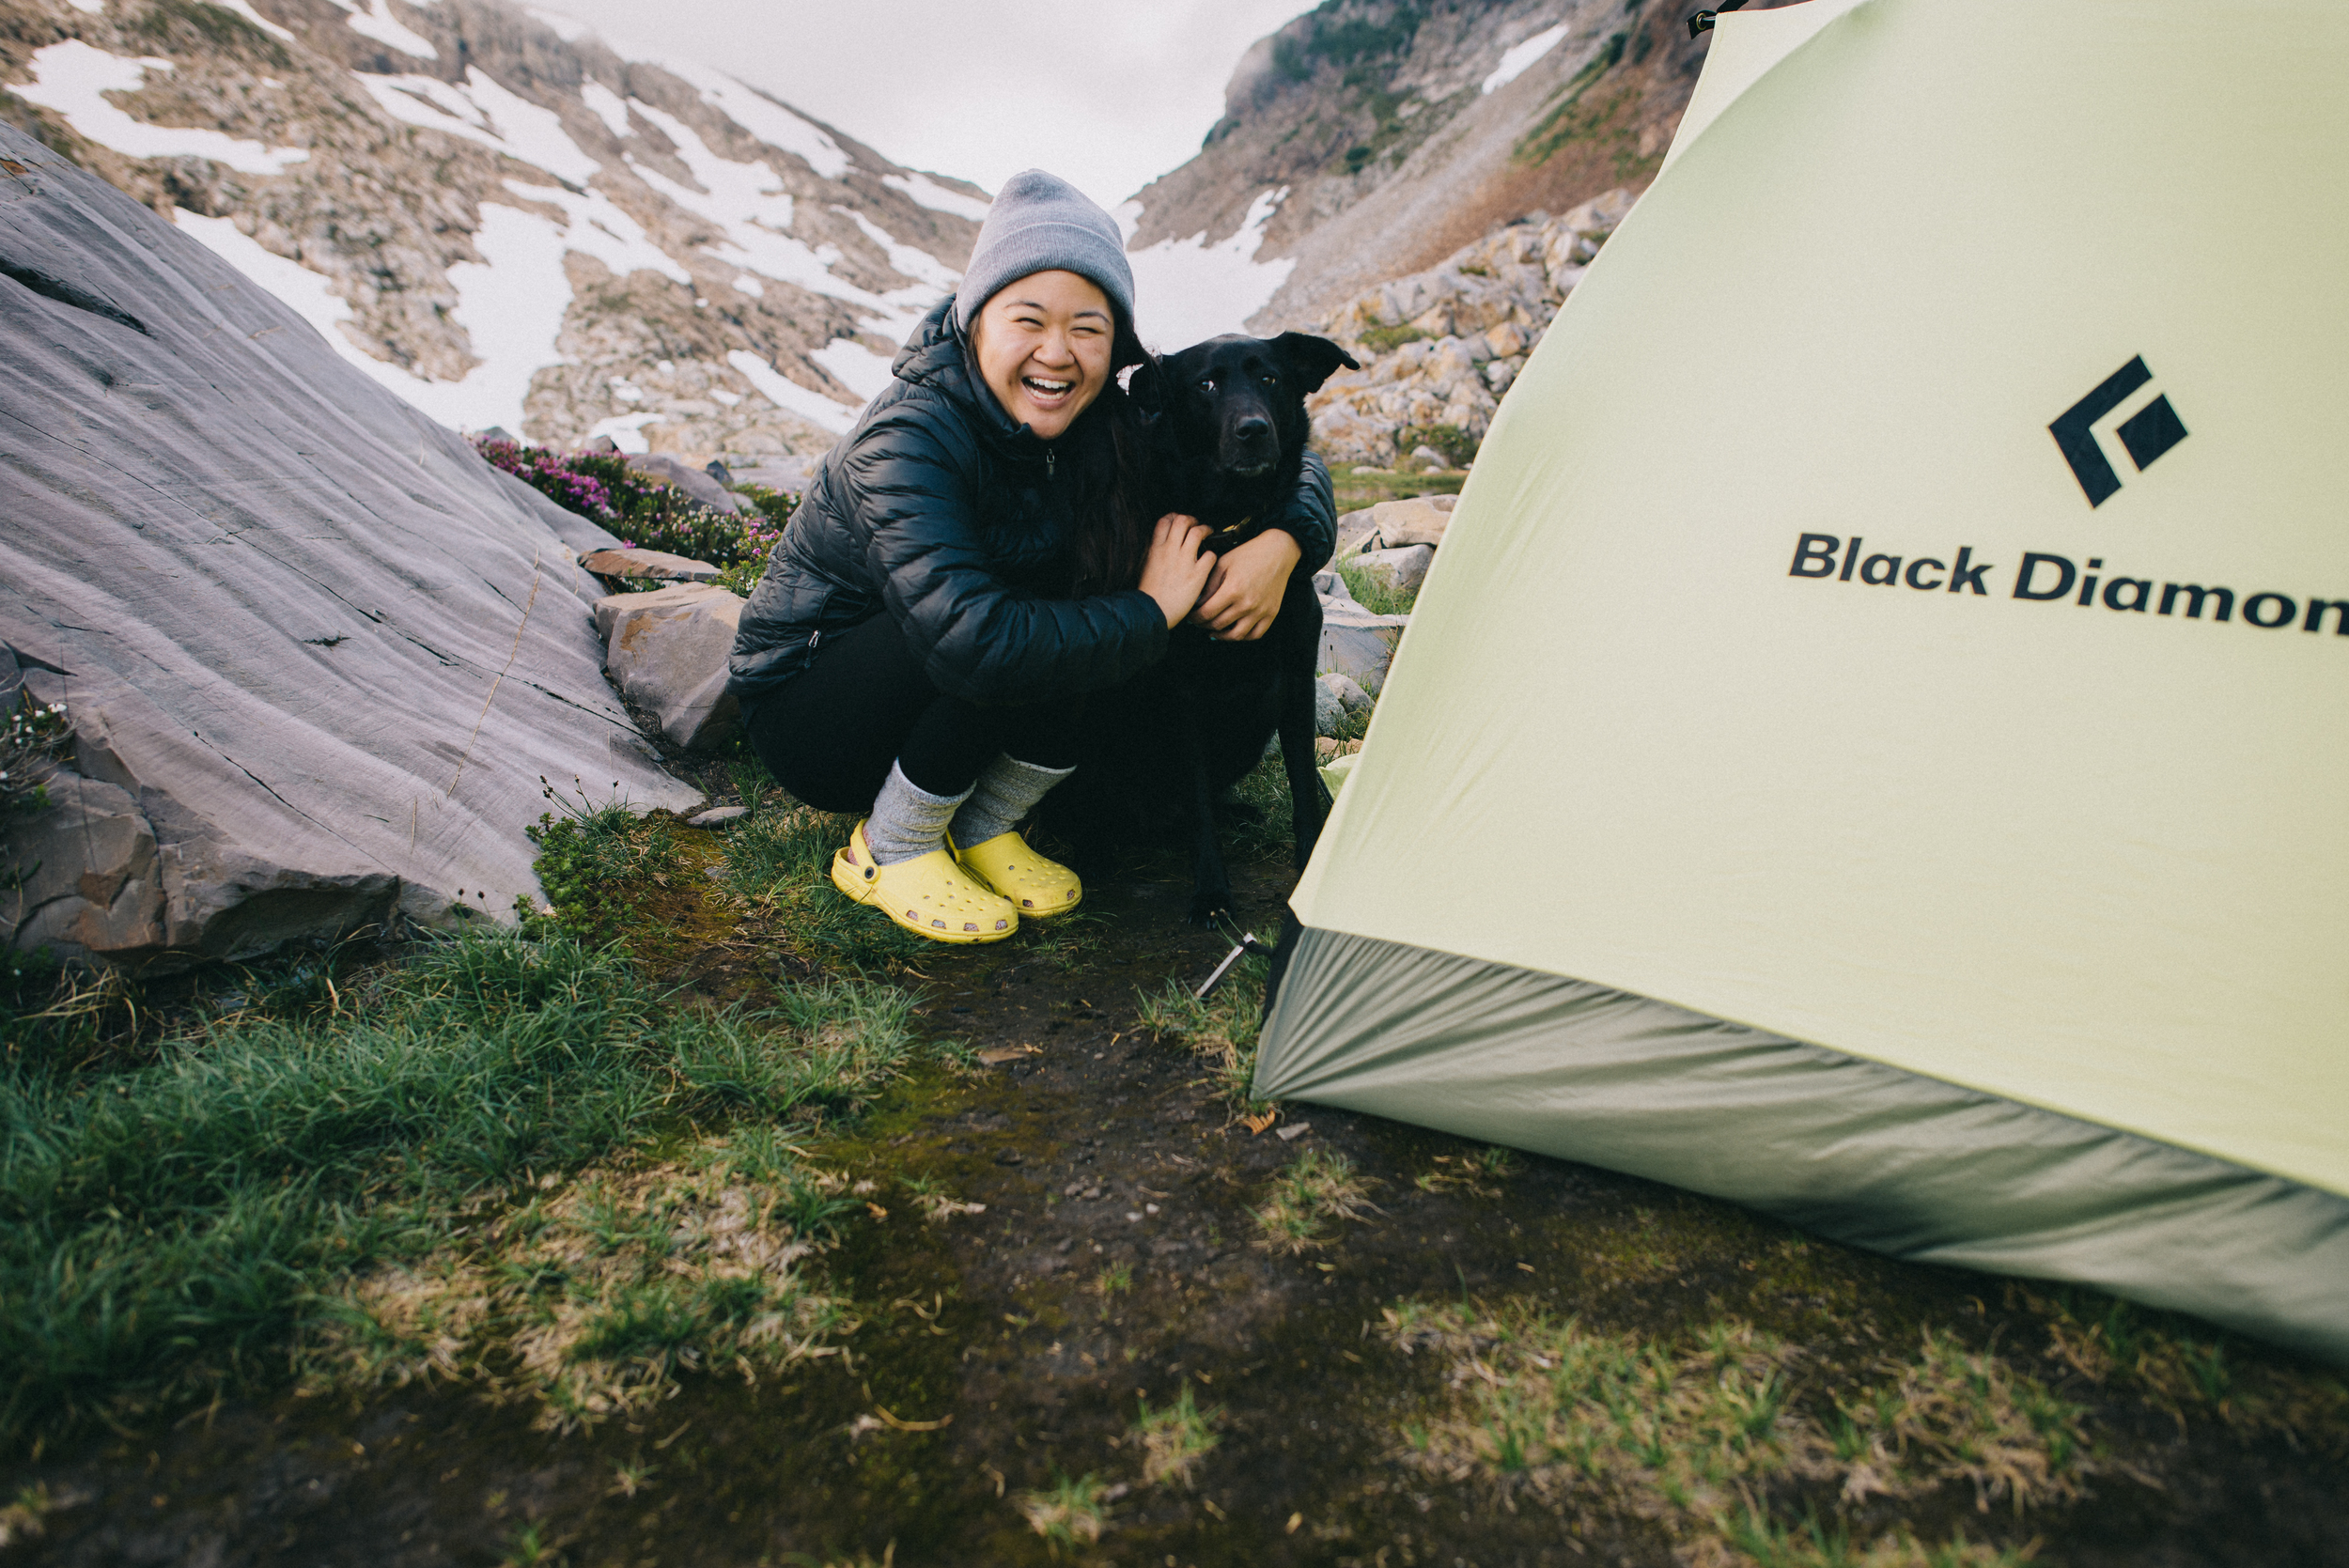 My bebe Clyde and I on our first solo backpacking trip together, August 2014